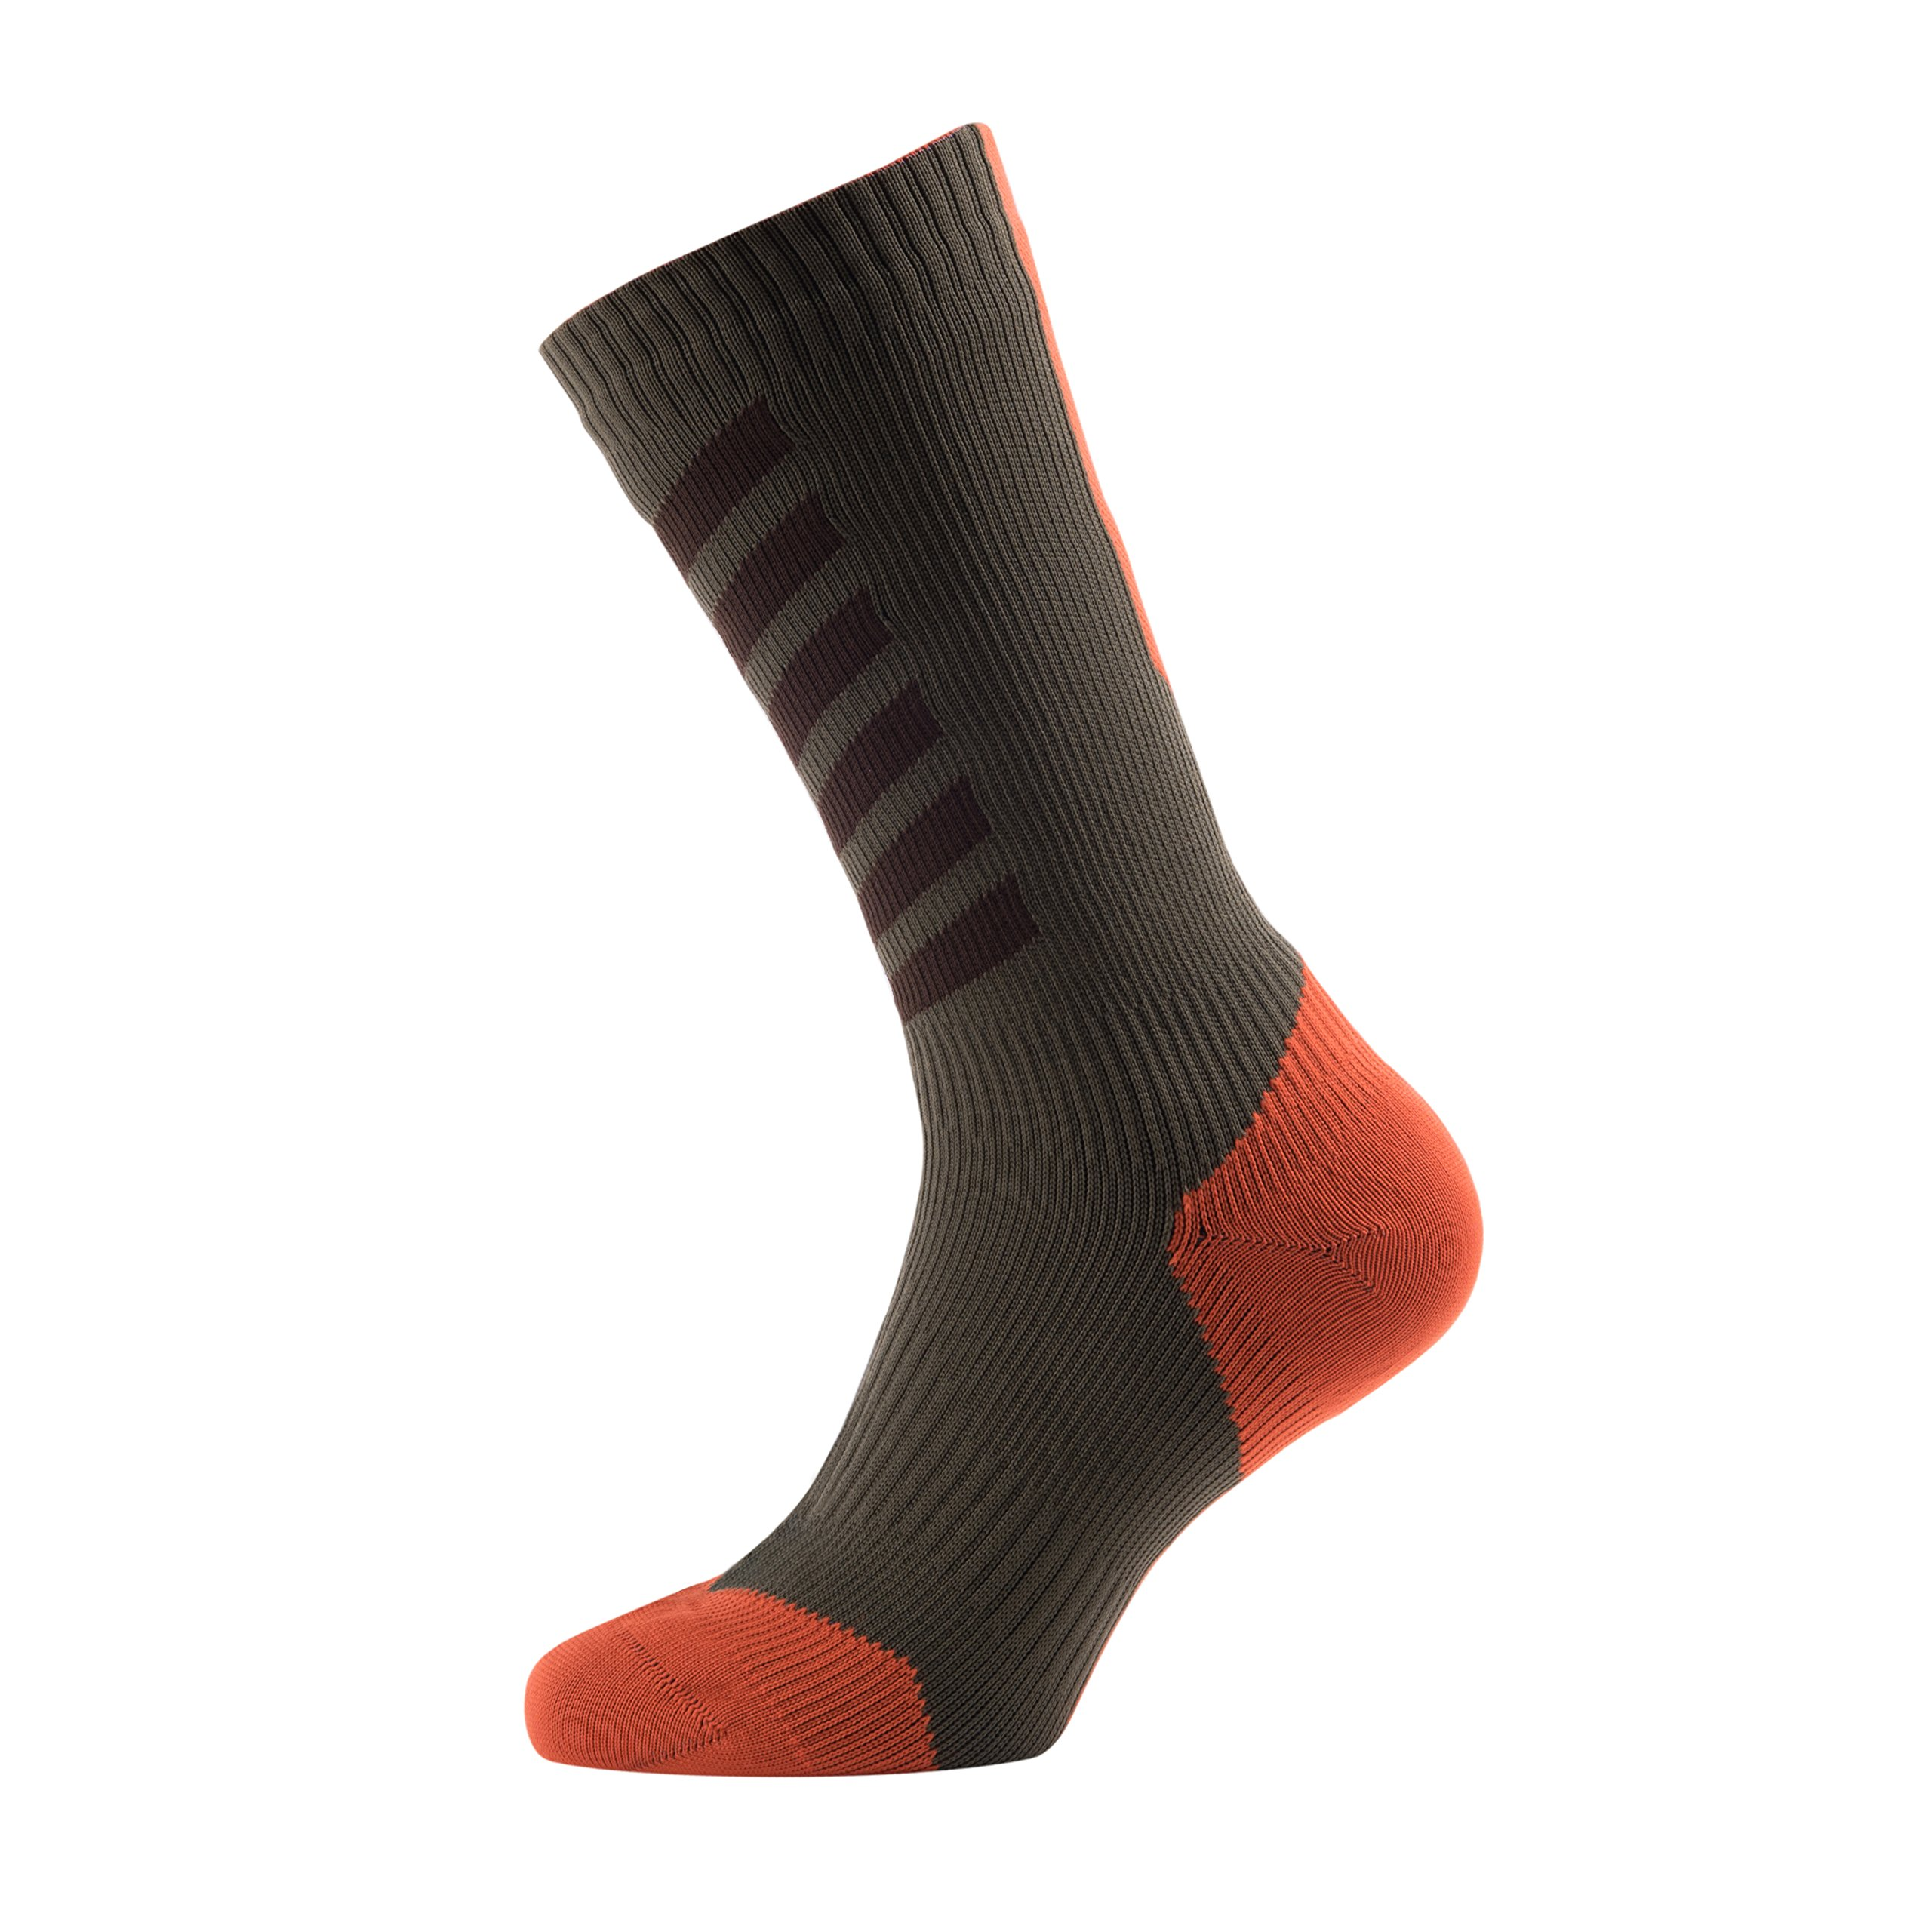 SEALSKINZ MTB Mid Mid Socks with Hydrostop, X Large - DK Olive/Mud/Orange. With a Helicase brand sock ring by SEALSKINZ